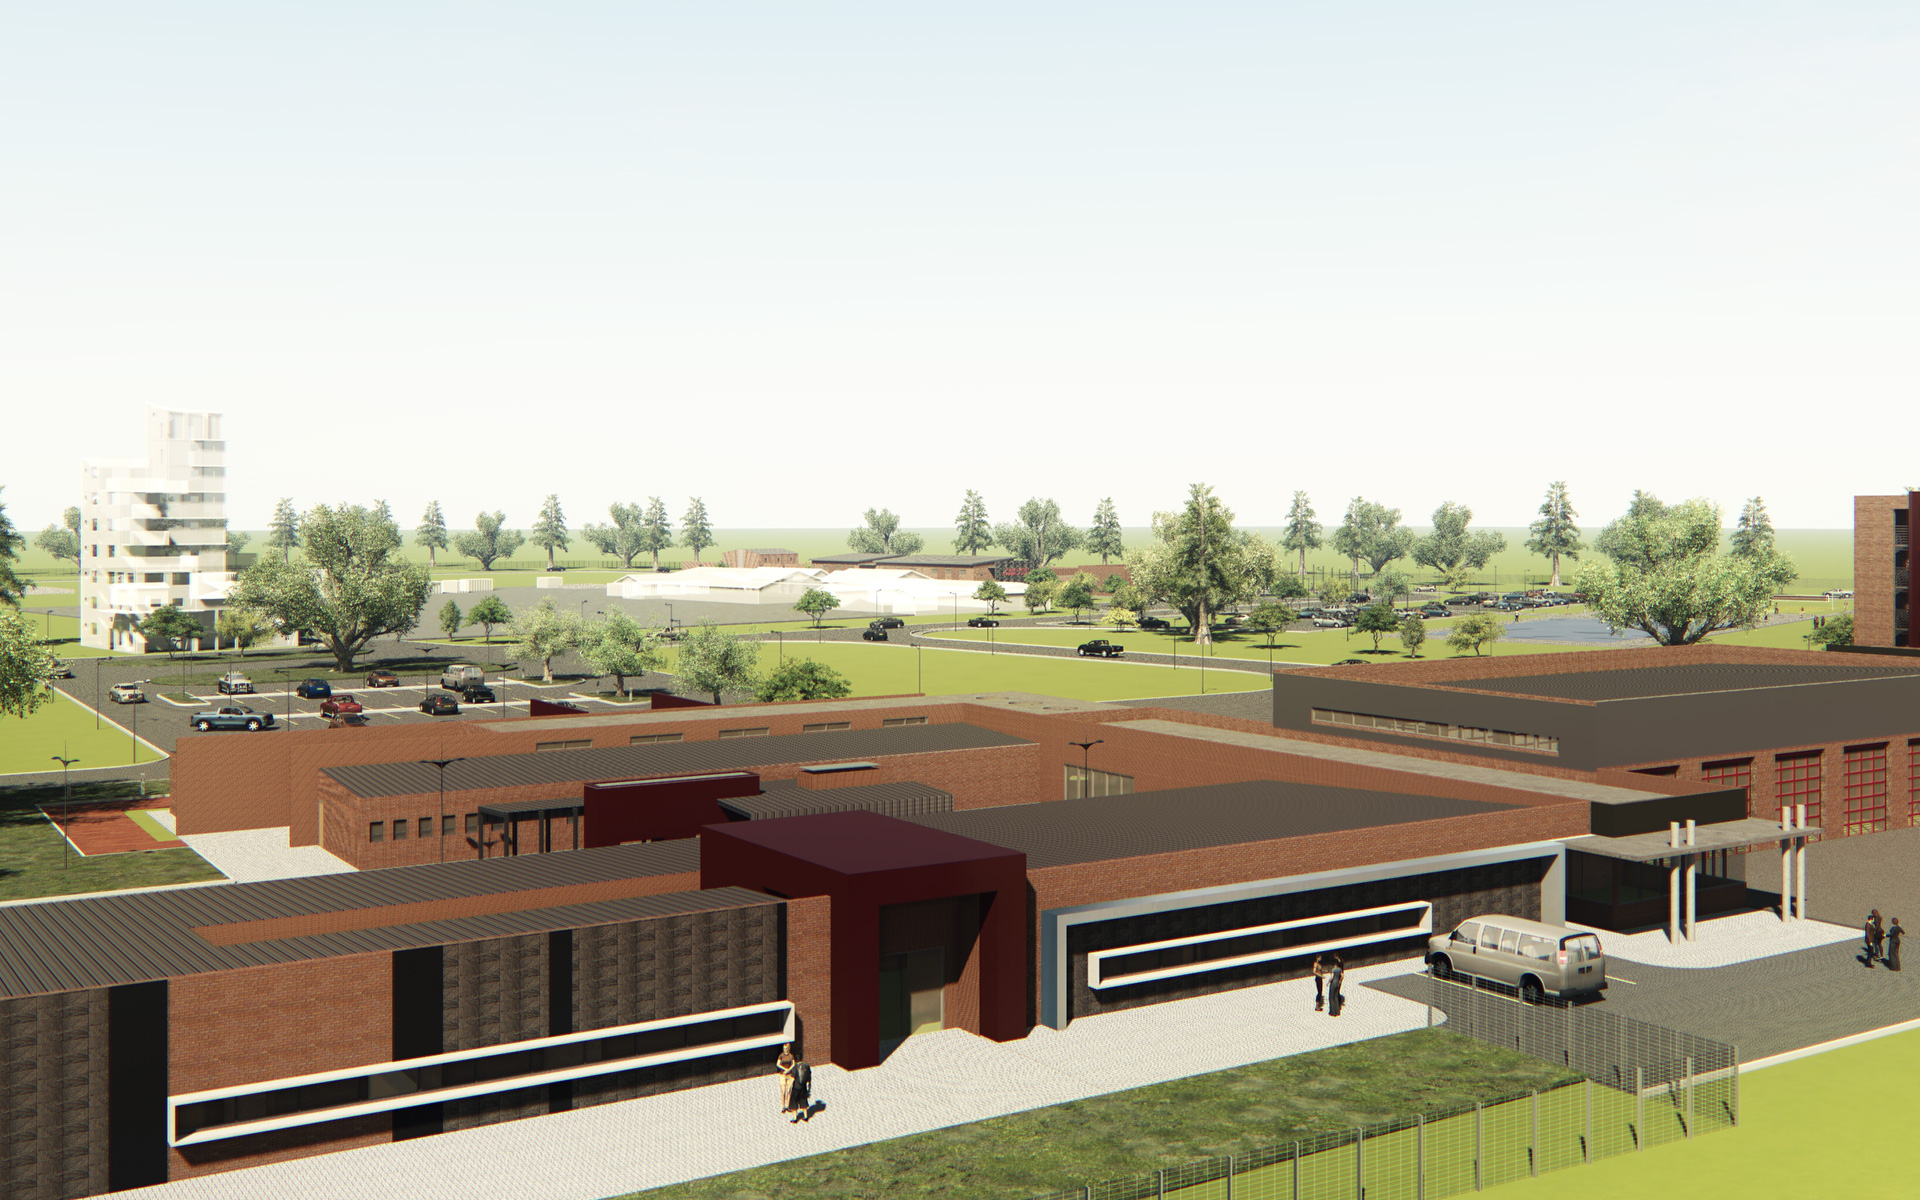 Lehae Training Academy & Fire Station by Delta BEC